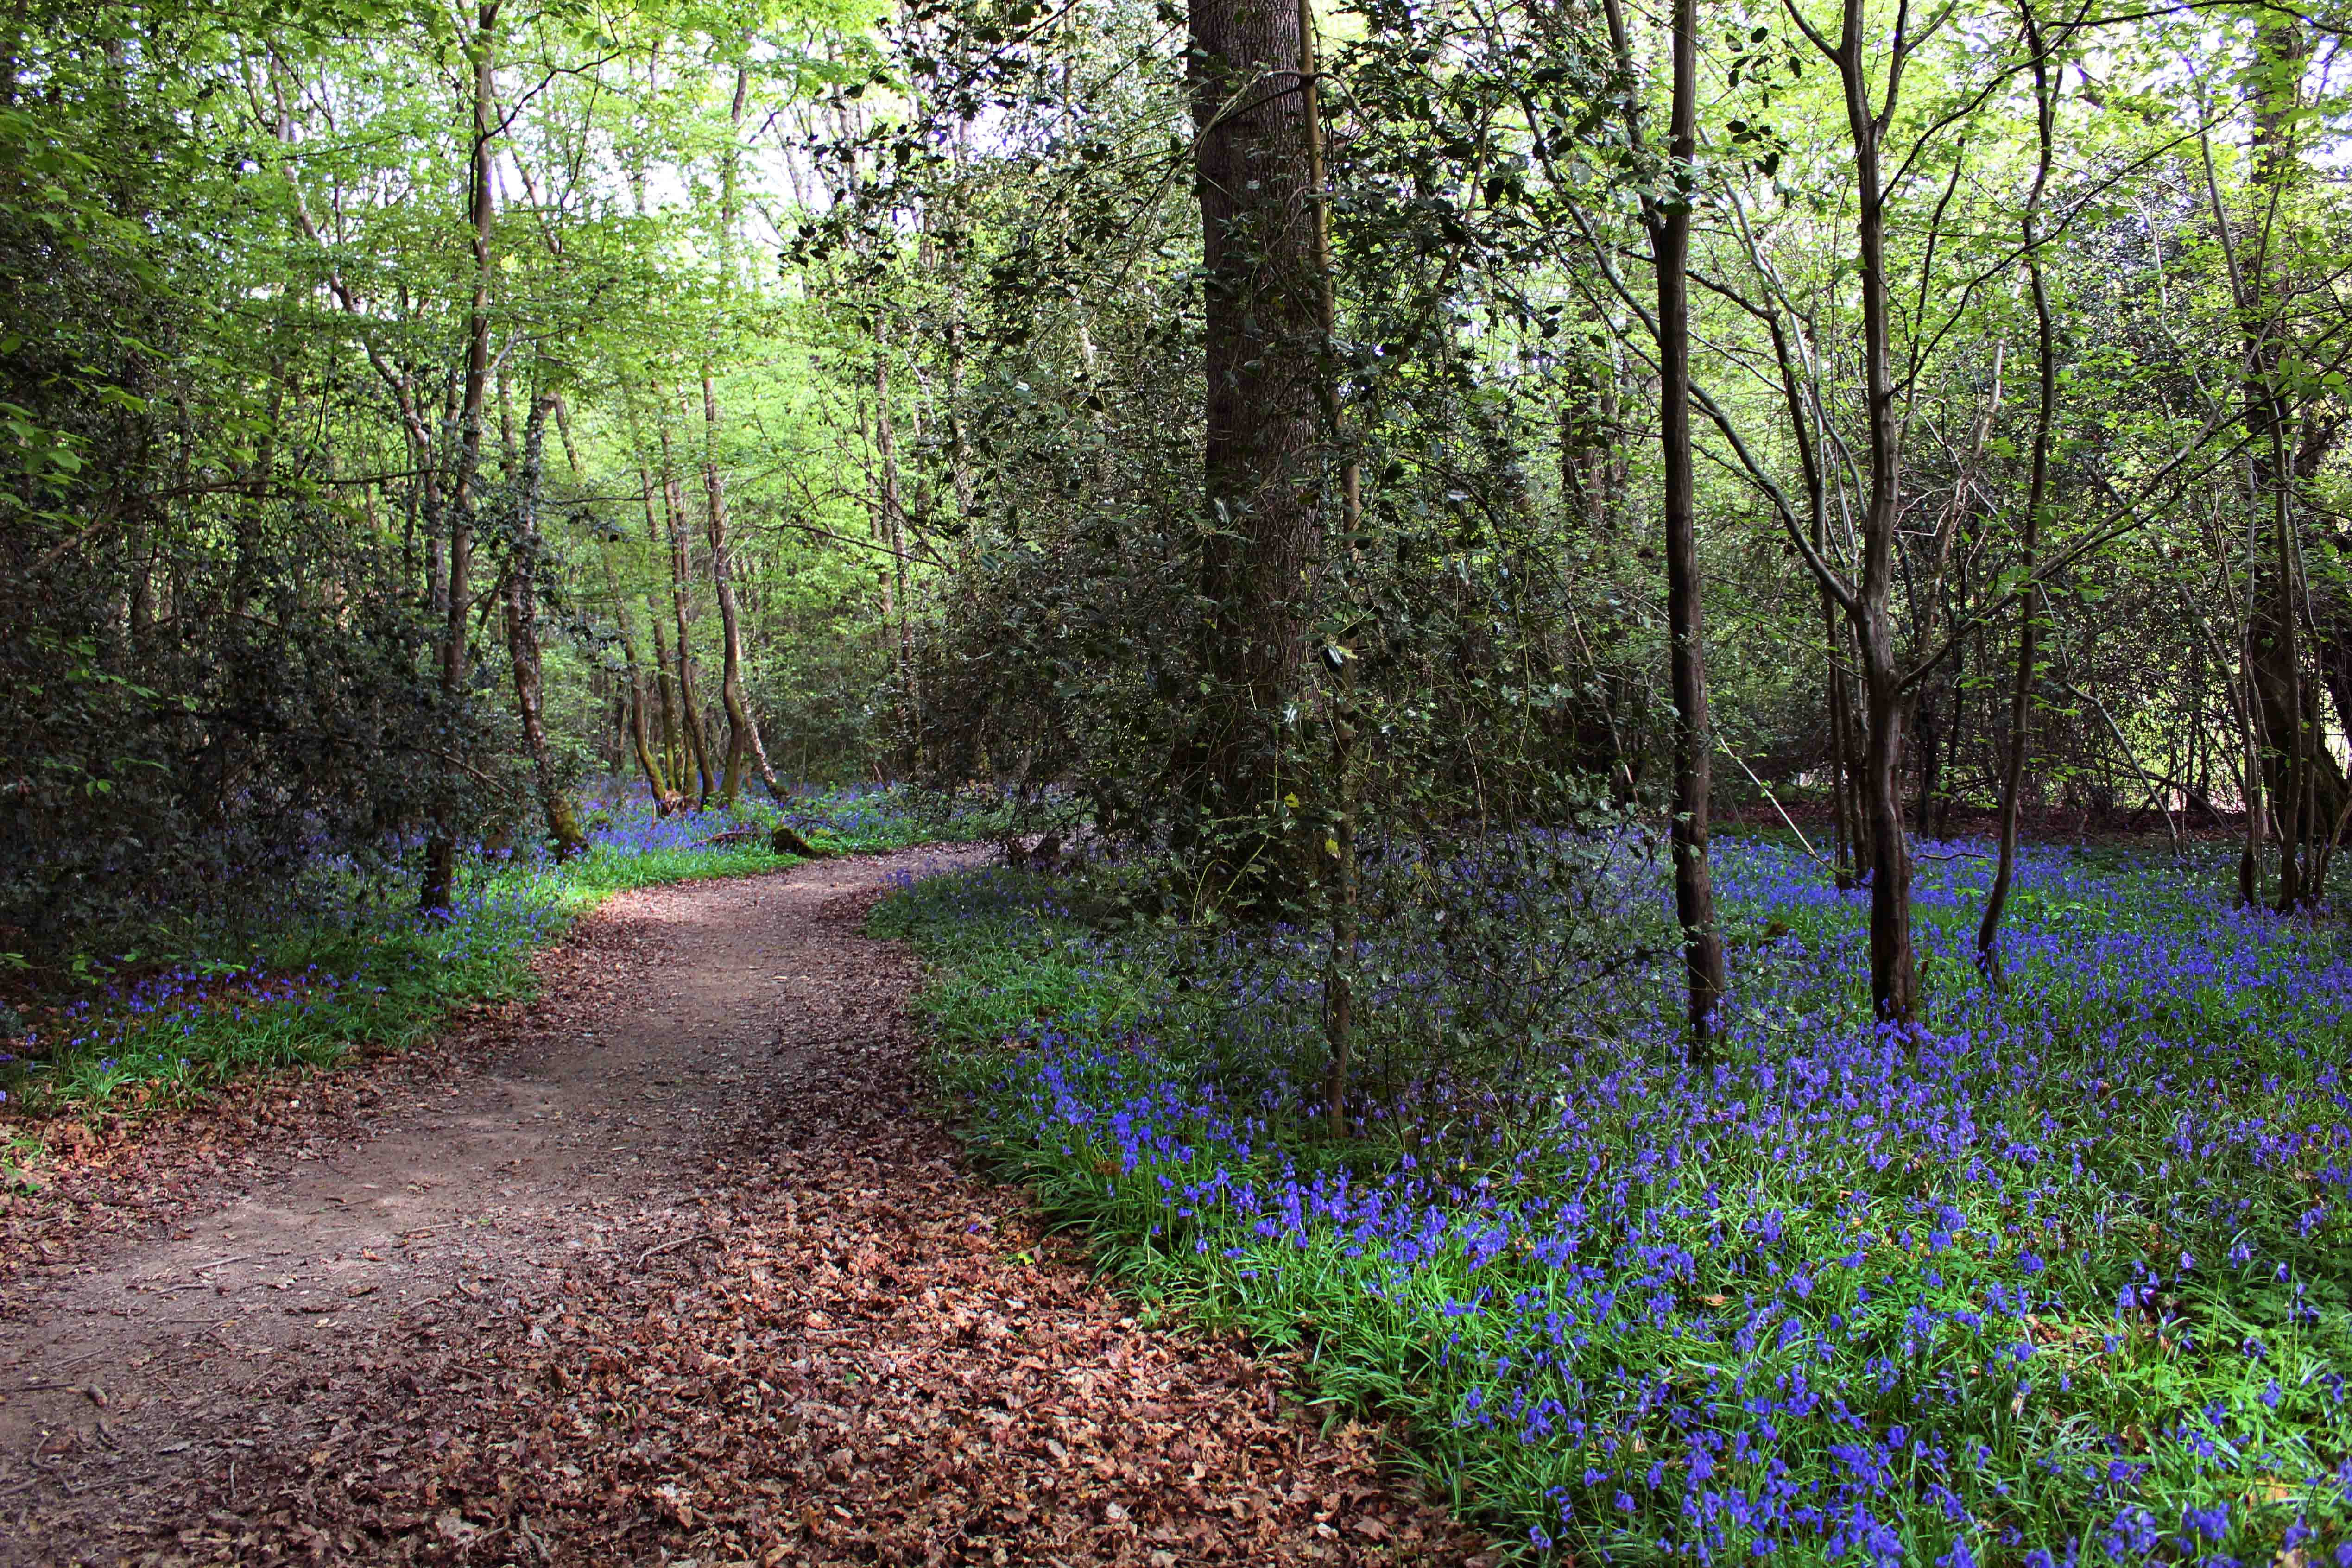 Photograph of bluebells in the wood in Bedelands Farm